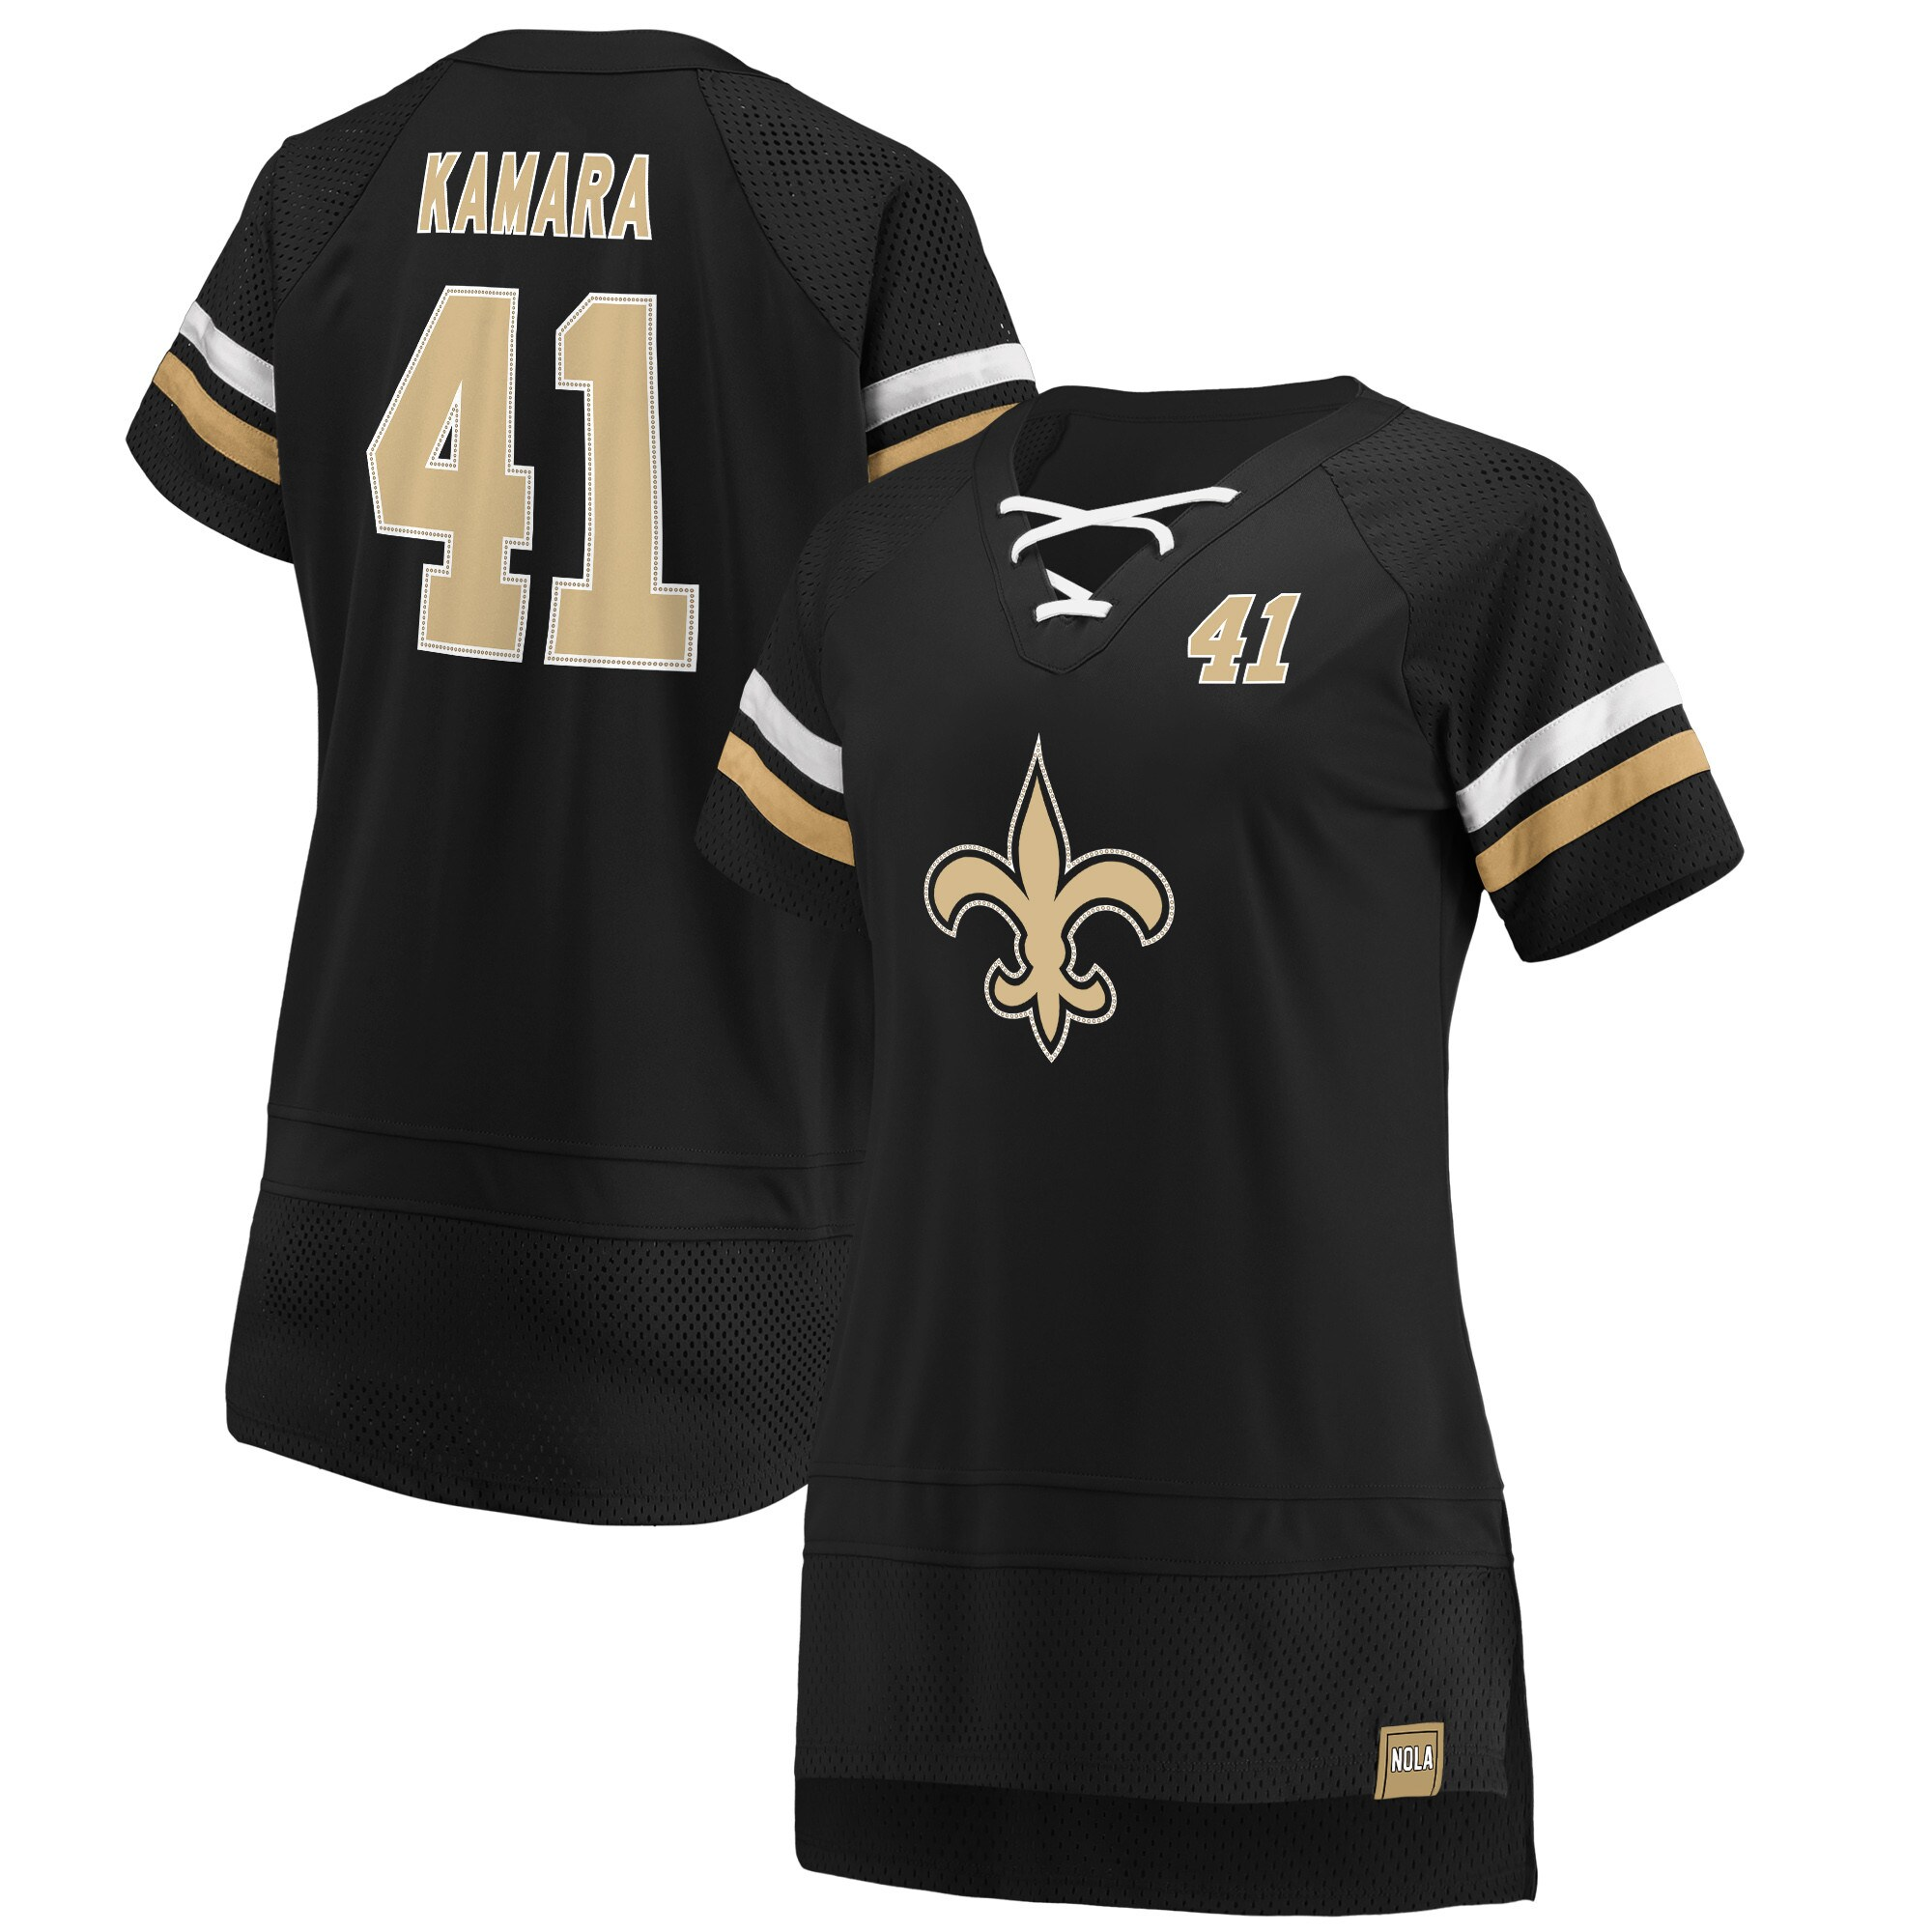 Alvin Kamara New Orleans Saints NFL Pro Line by Fanatics Branded Women's Athena Iconic Player Name & Number V-Neck Top - Black